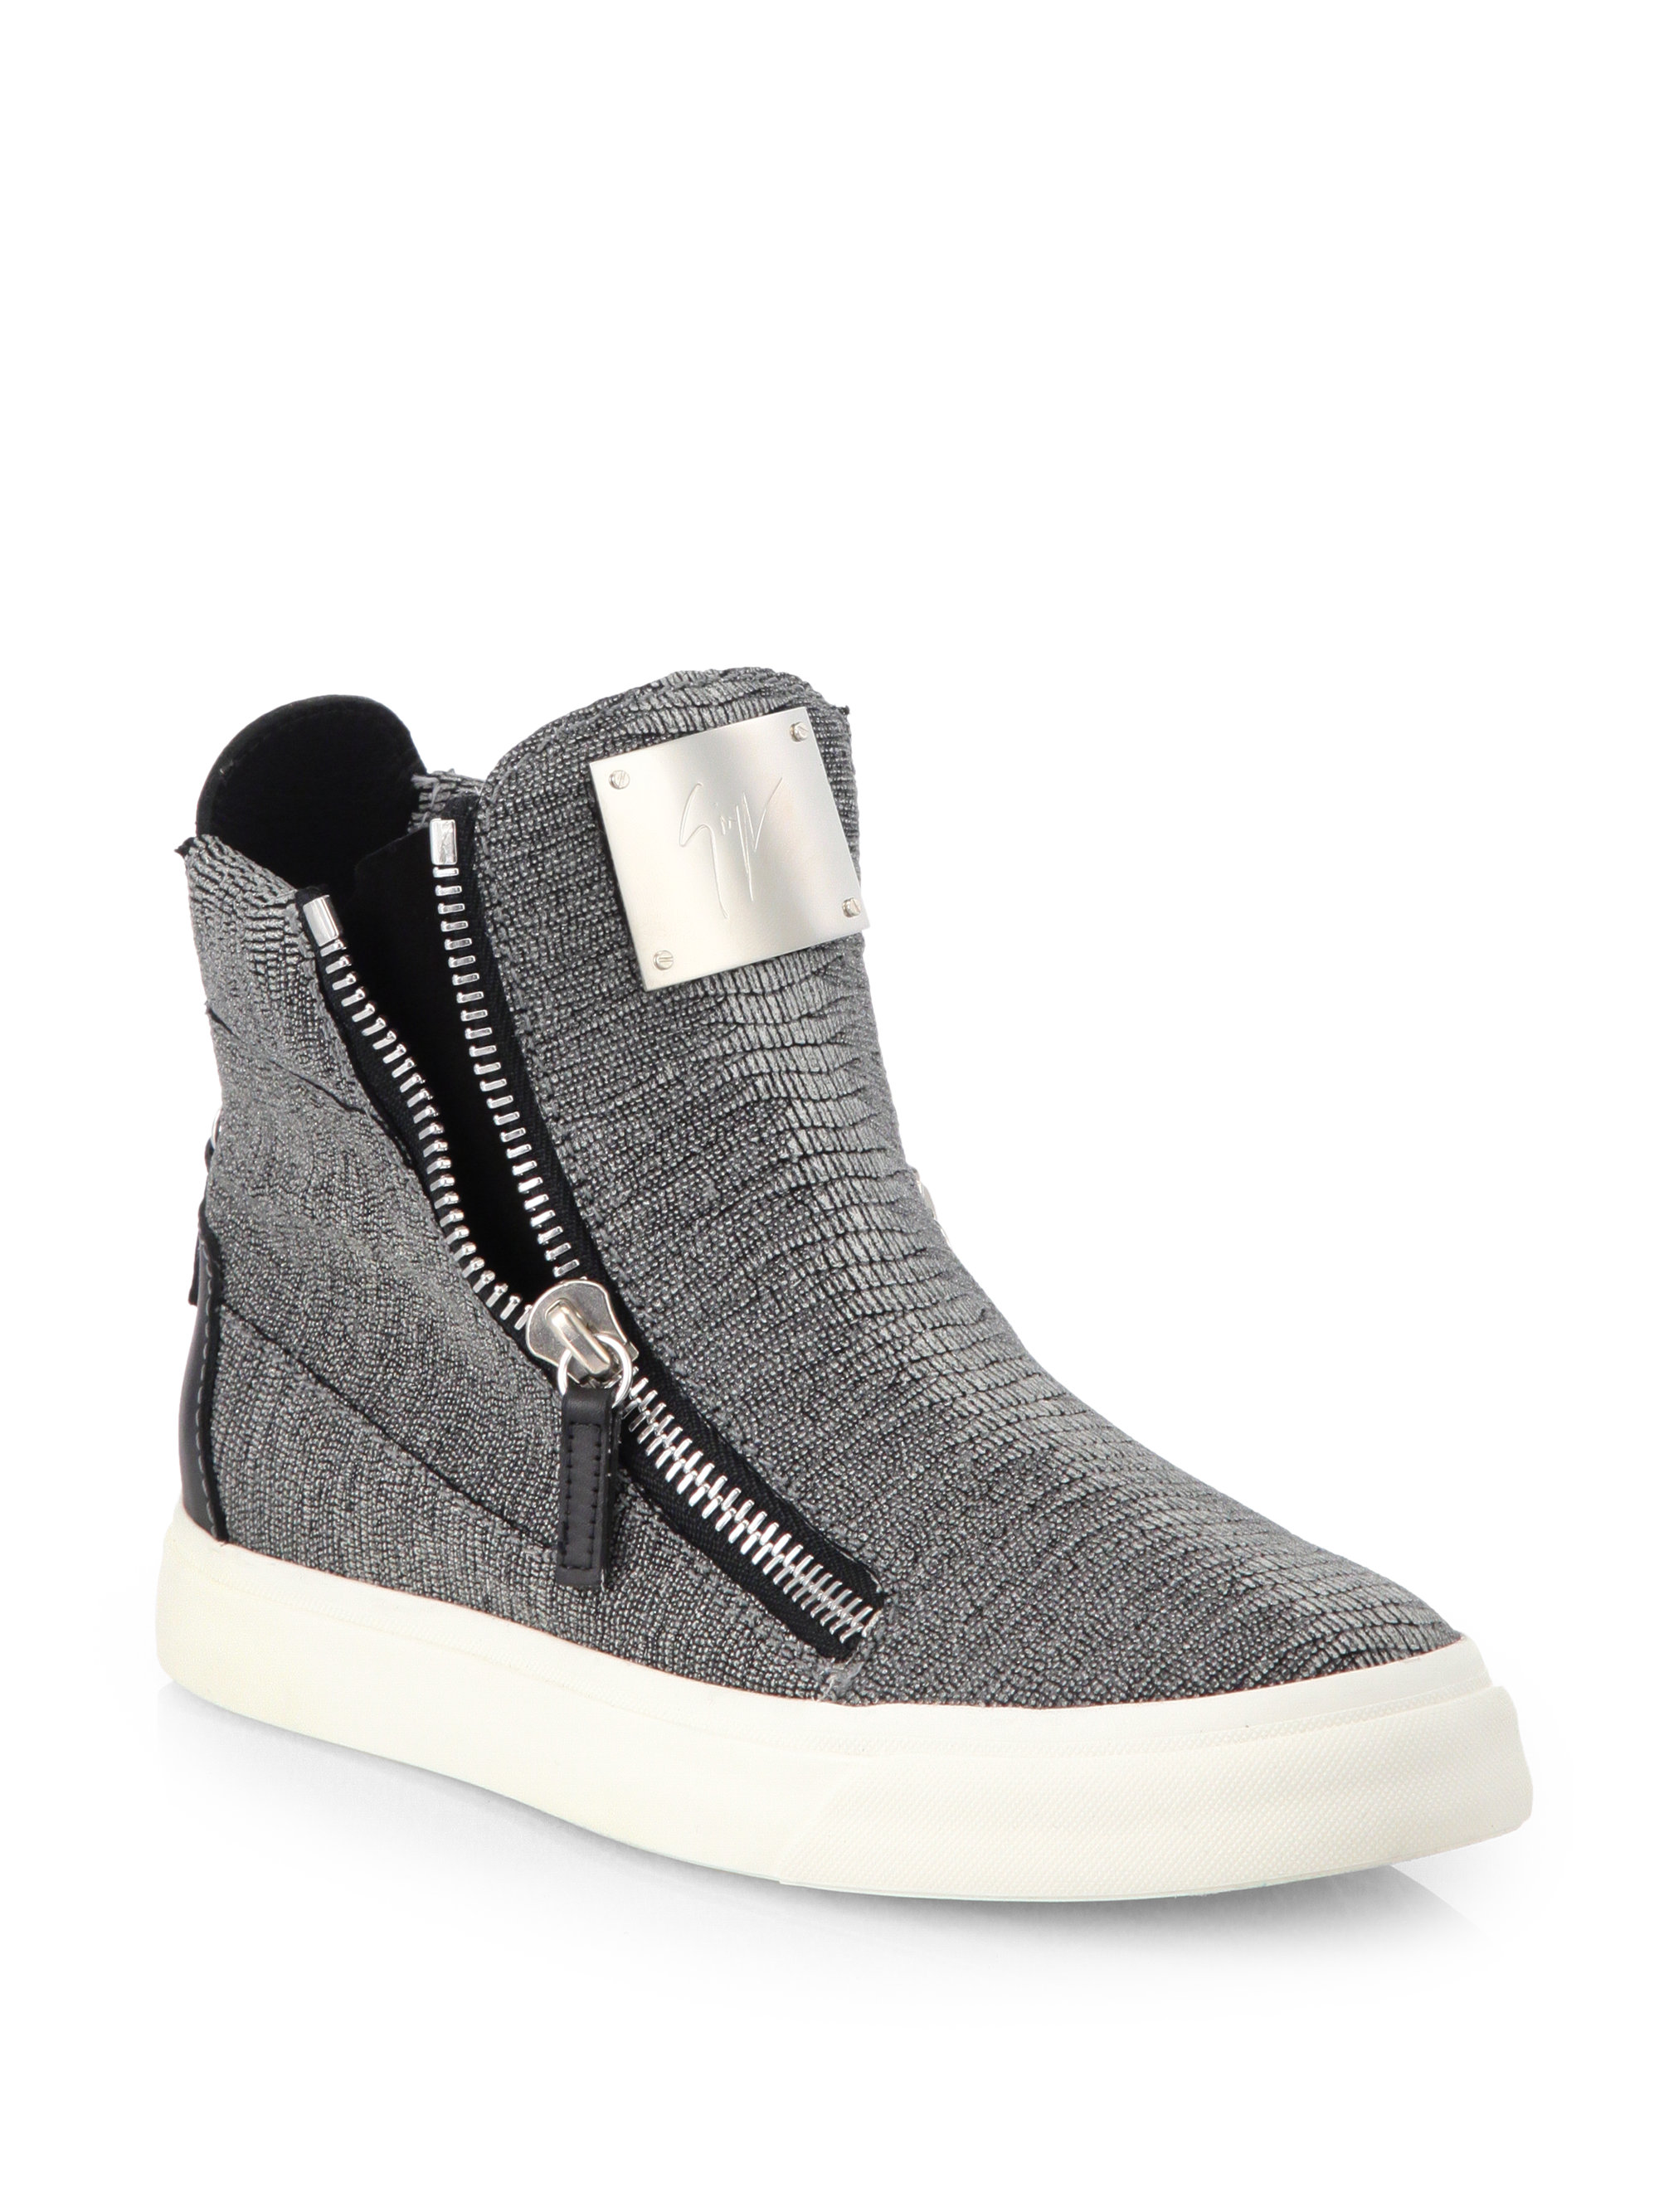 Mens Shoes With Metal Heels